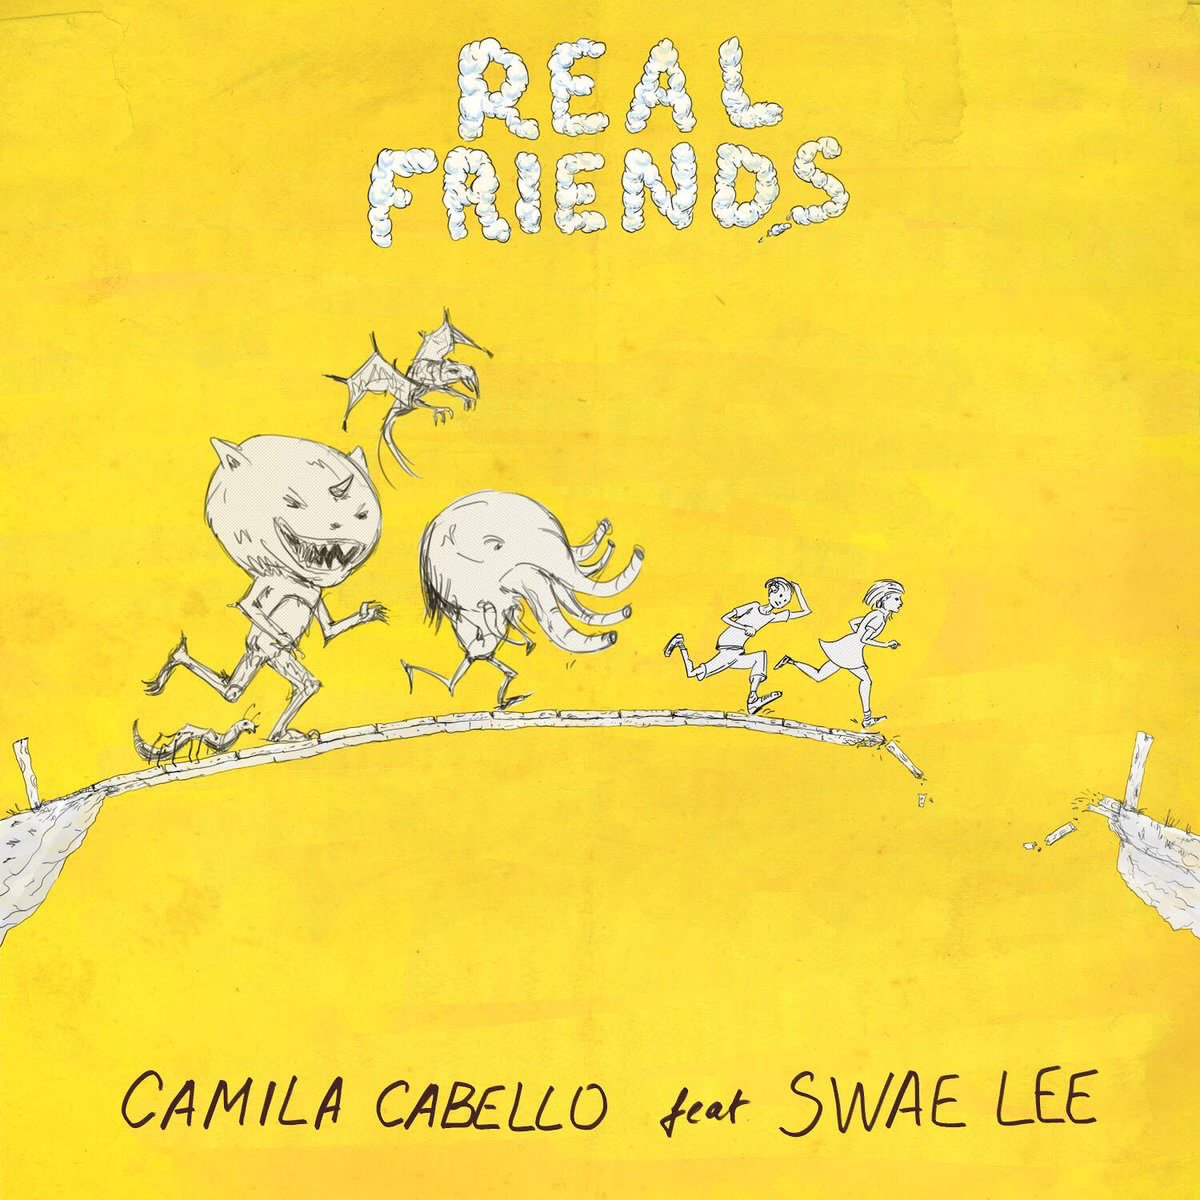 OUT NOW �� @Camila_Cabello ft. @goSwaeLee https://t.co/qmVF80G1Wj https://t.co/T7yWpsjVtS